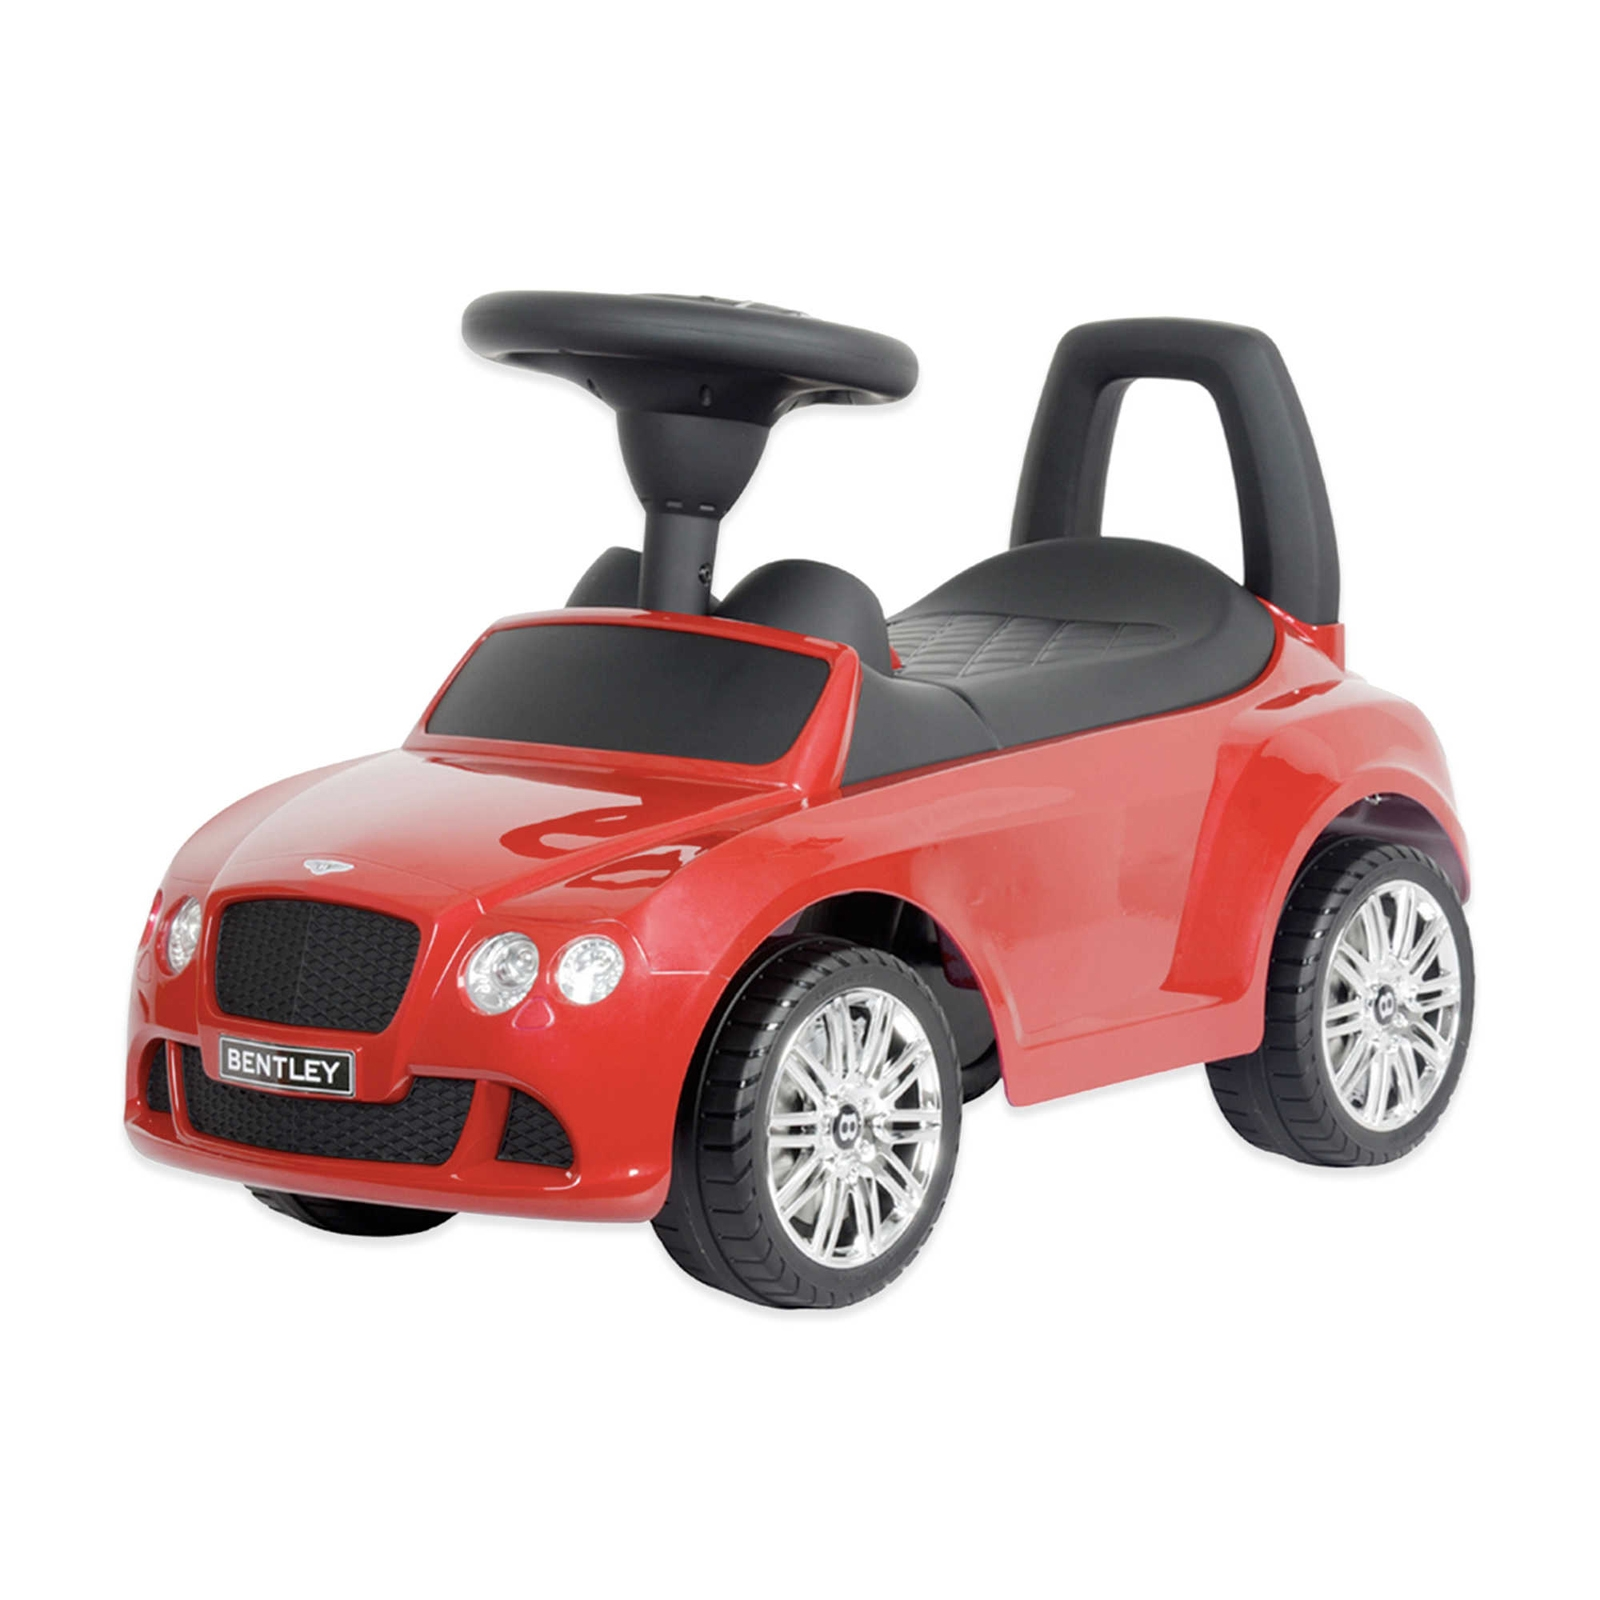 Licensed Bentley Push Kids Ride On Car - Red